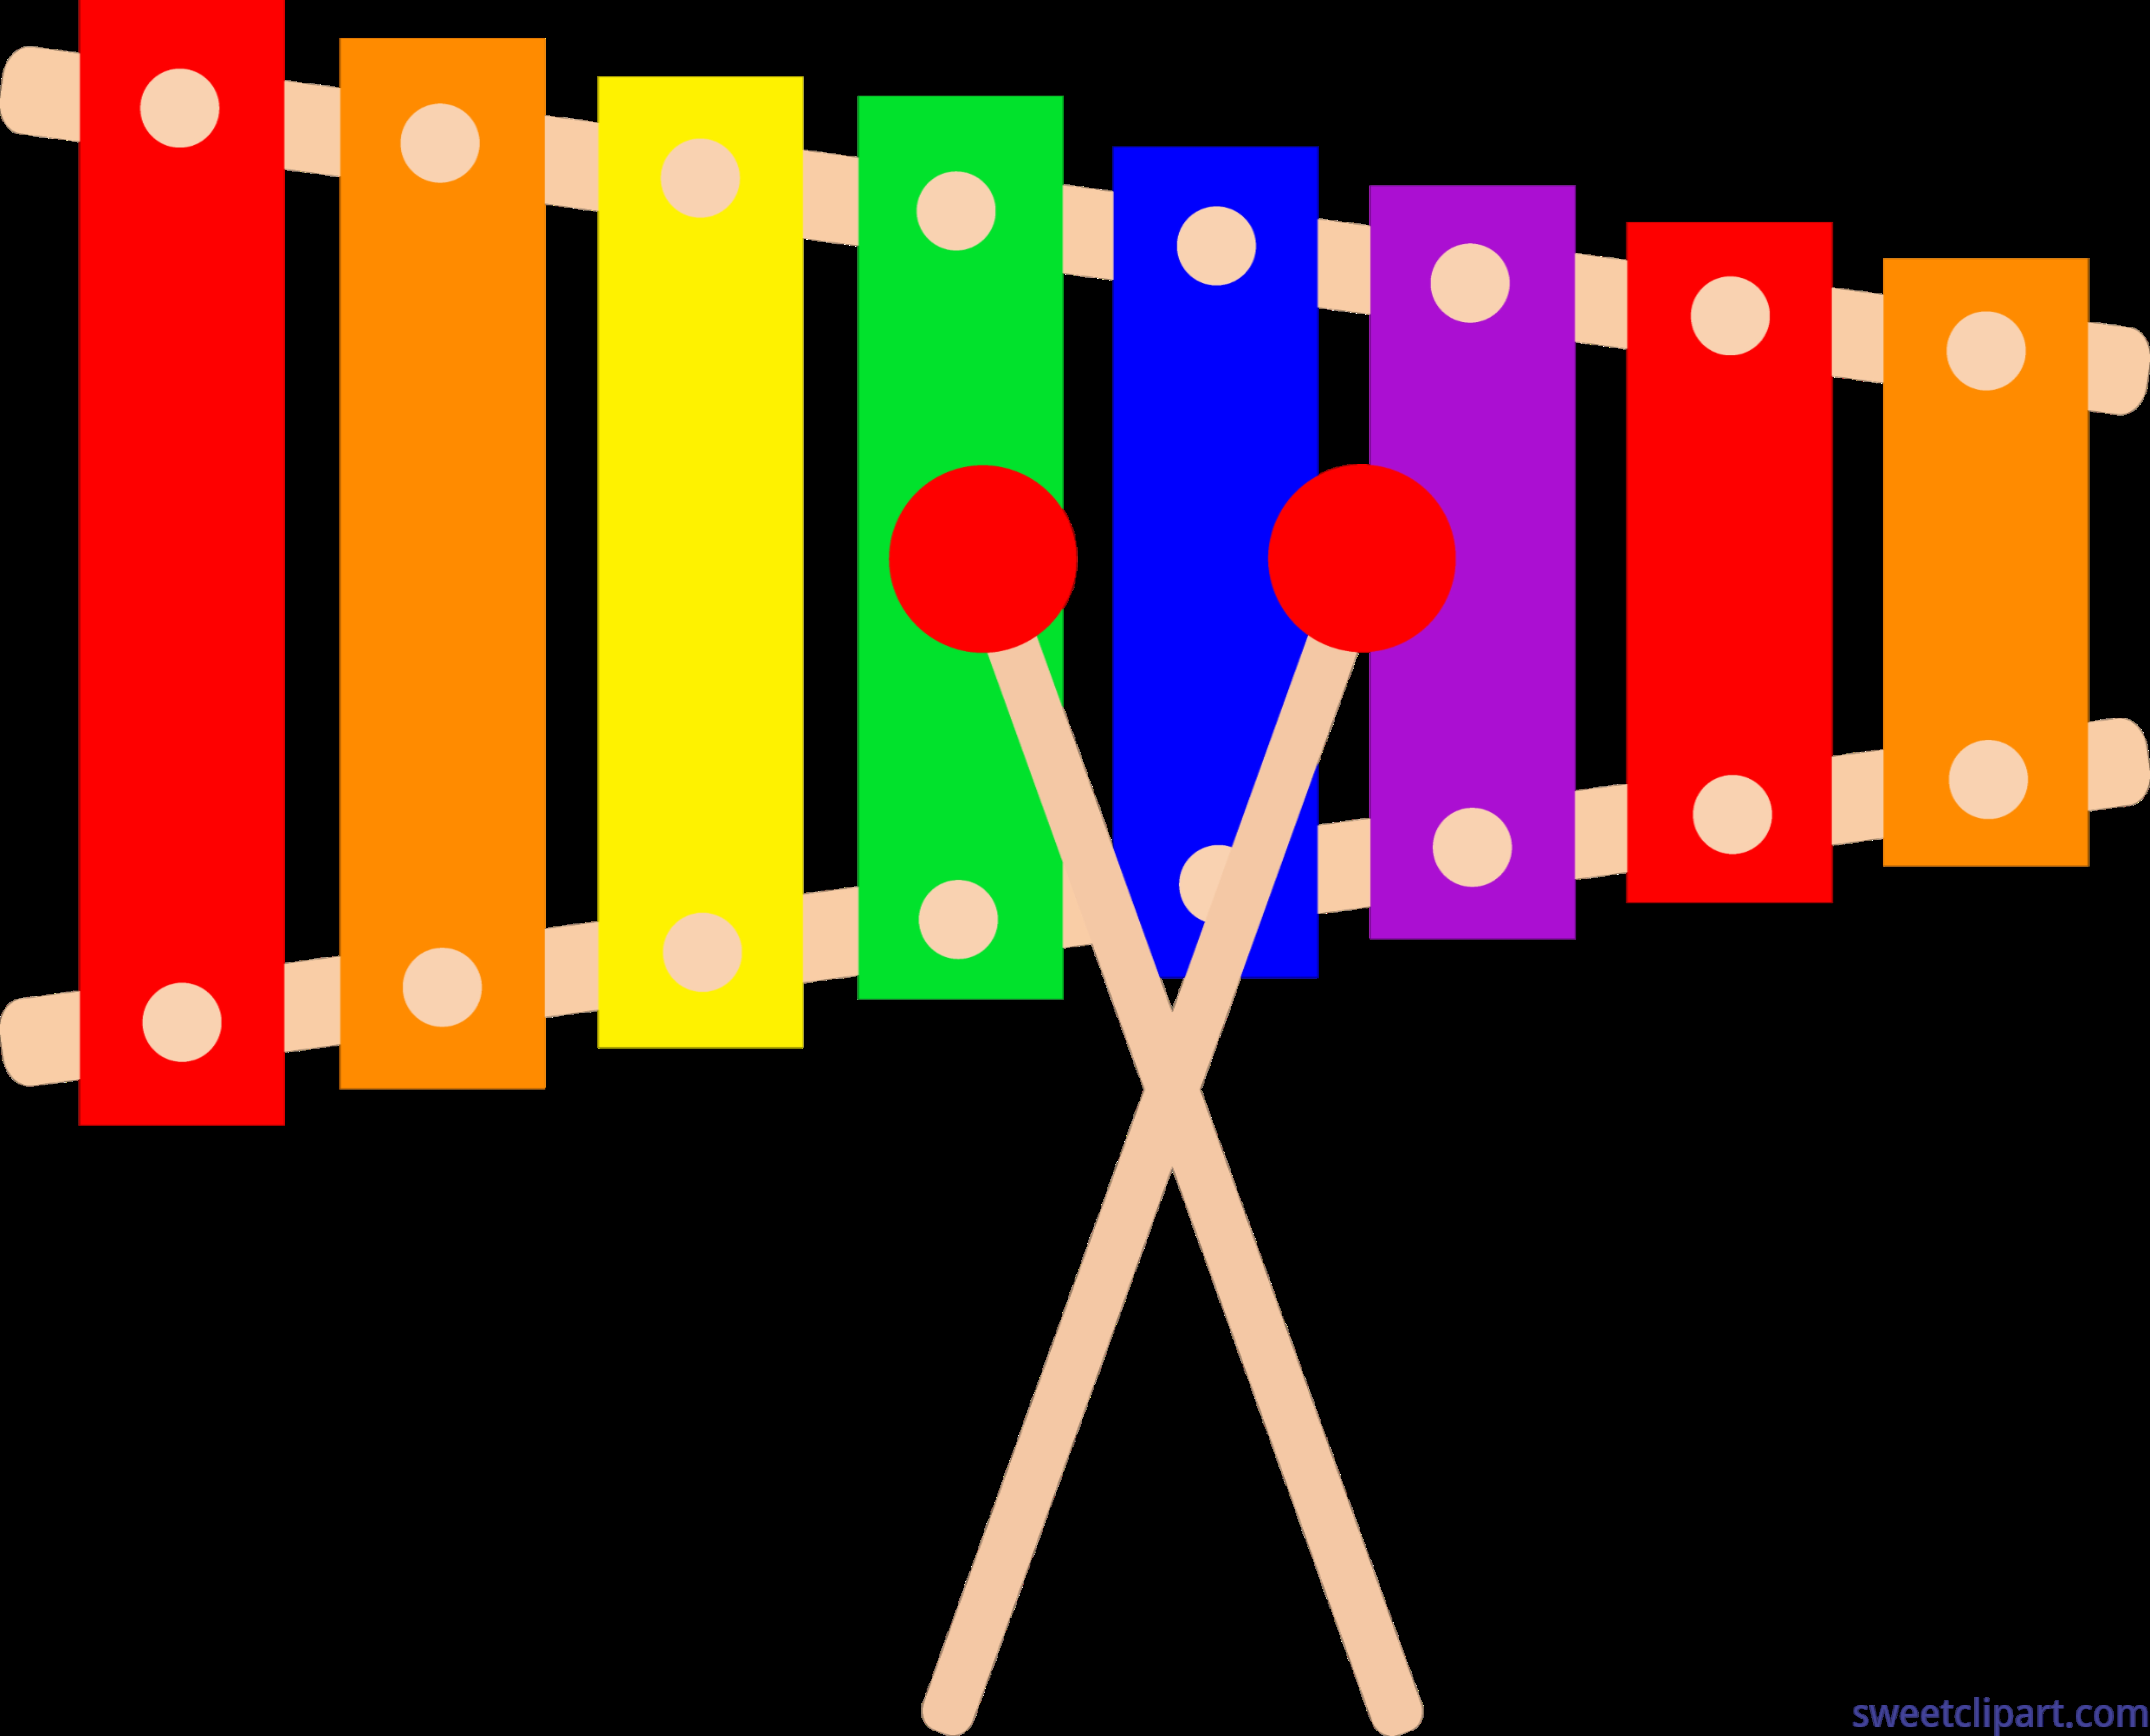 Xylophone Clipart at GetDrawings.com.